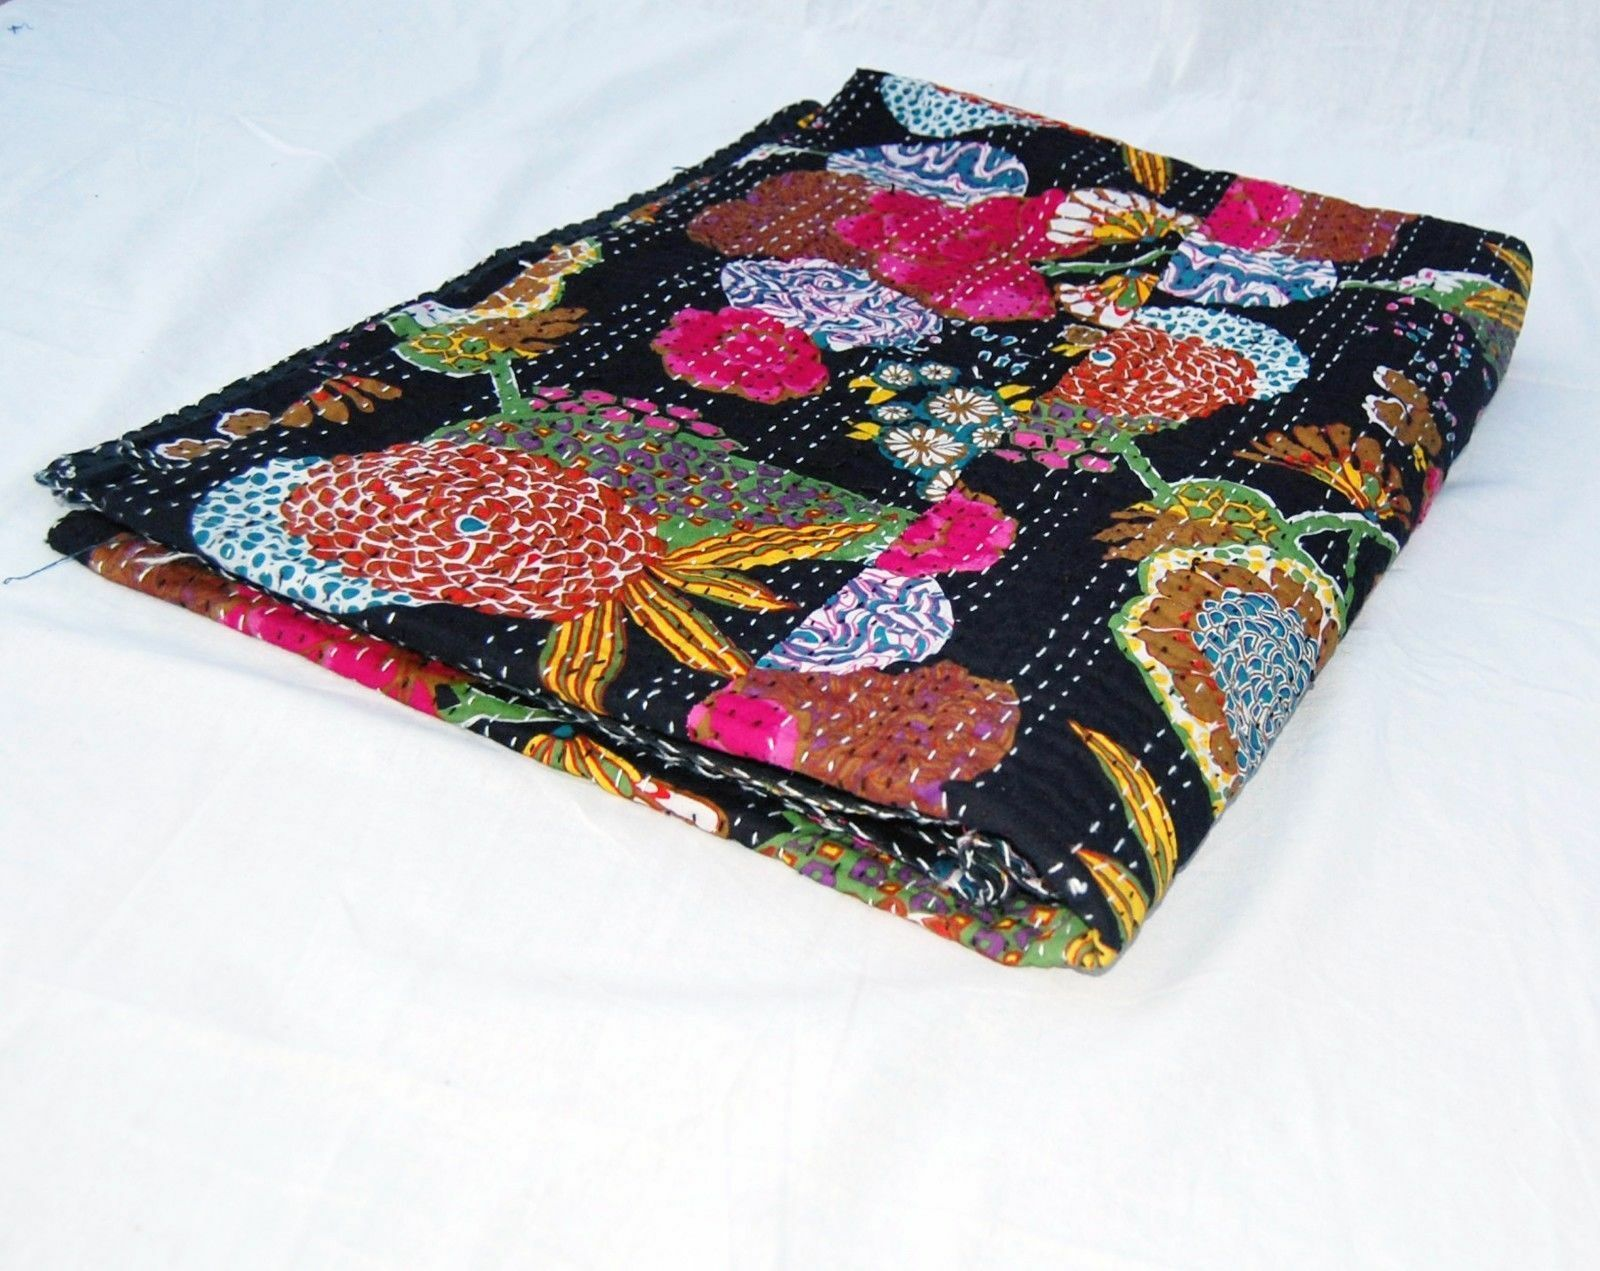 Vintage Fruit Print Indian Kantha Quilt Single Blanket Throw For Christmas Gift